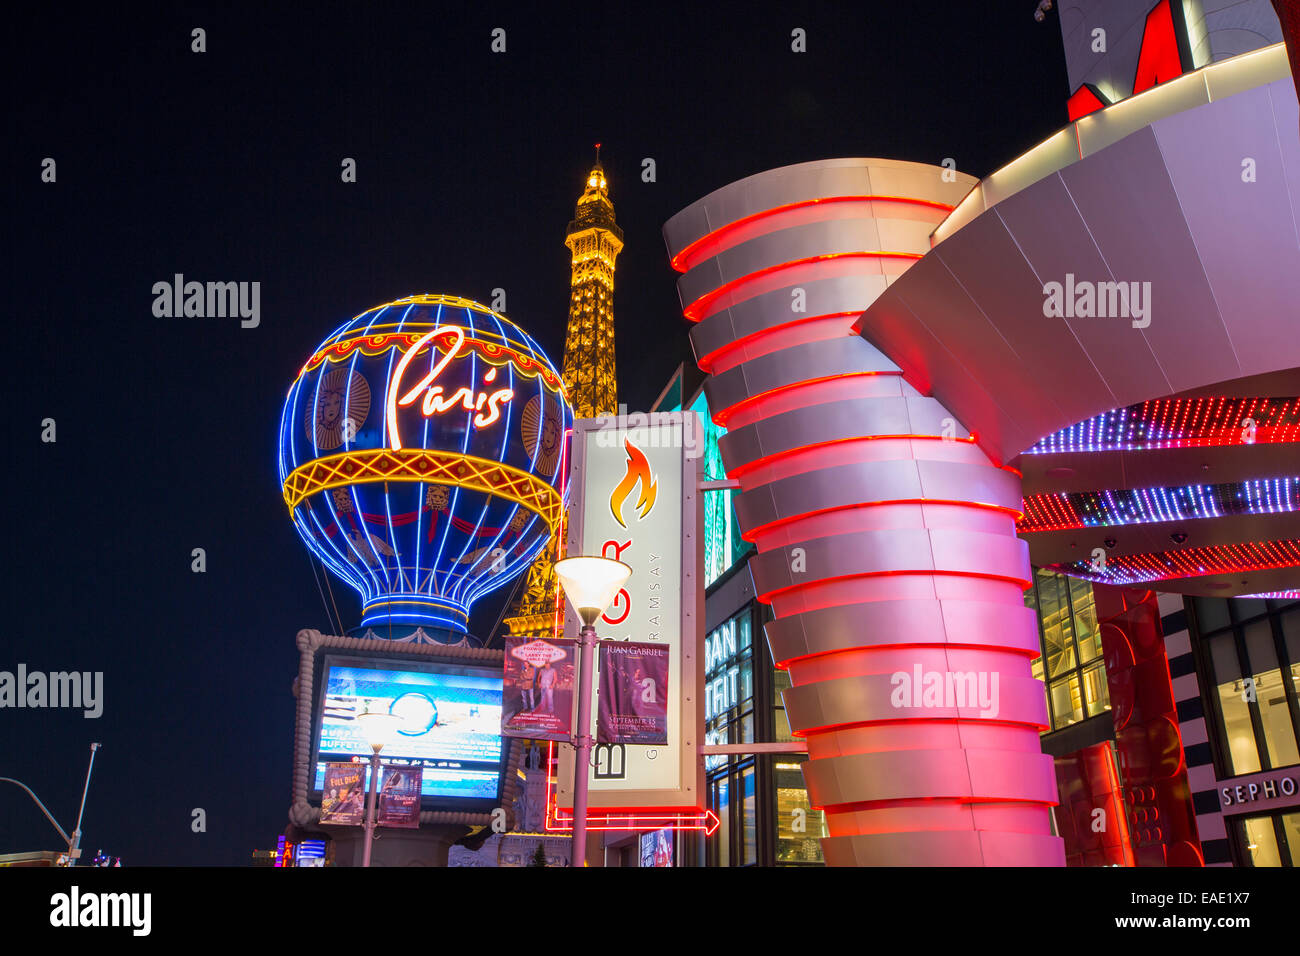 Las Vegas Boulevard at dusk, Las Vegas, Nevada, USA, probably the most unsustainable city in the world, it uses - Stock Image